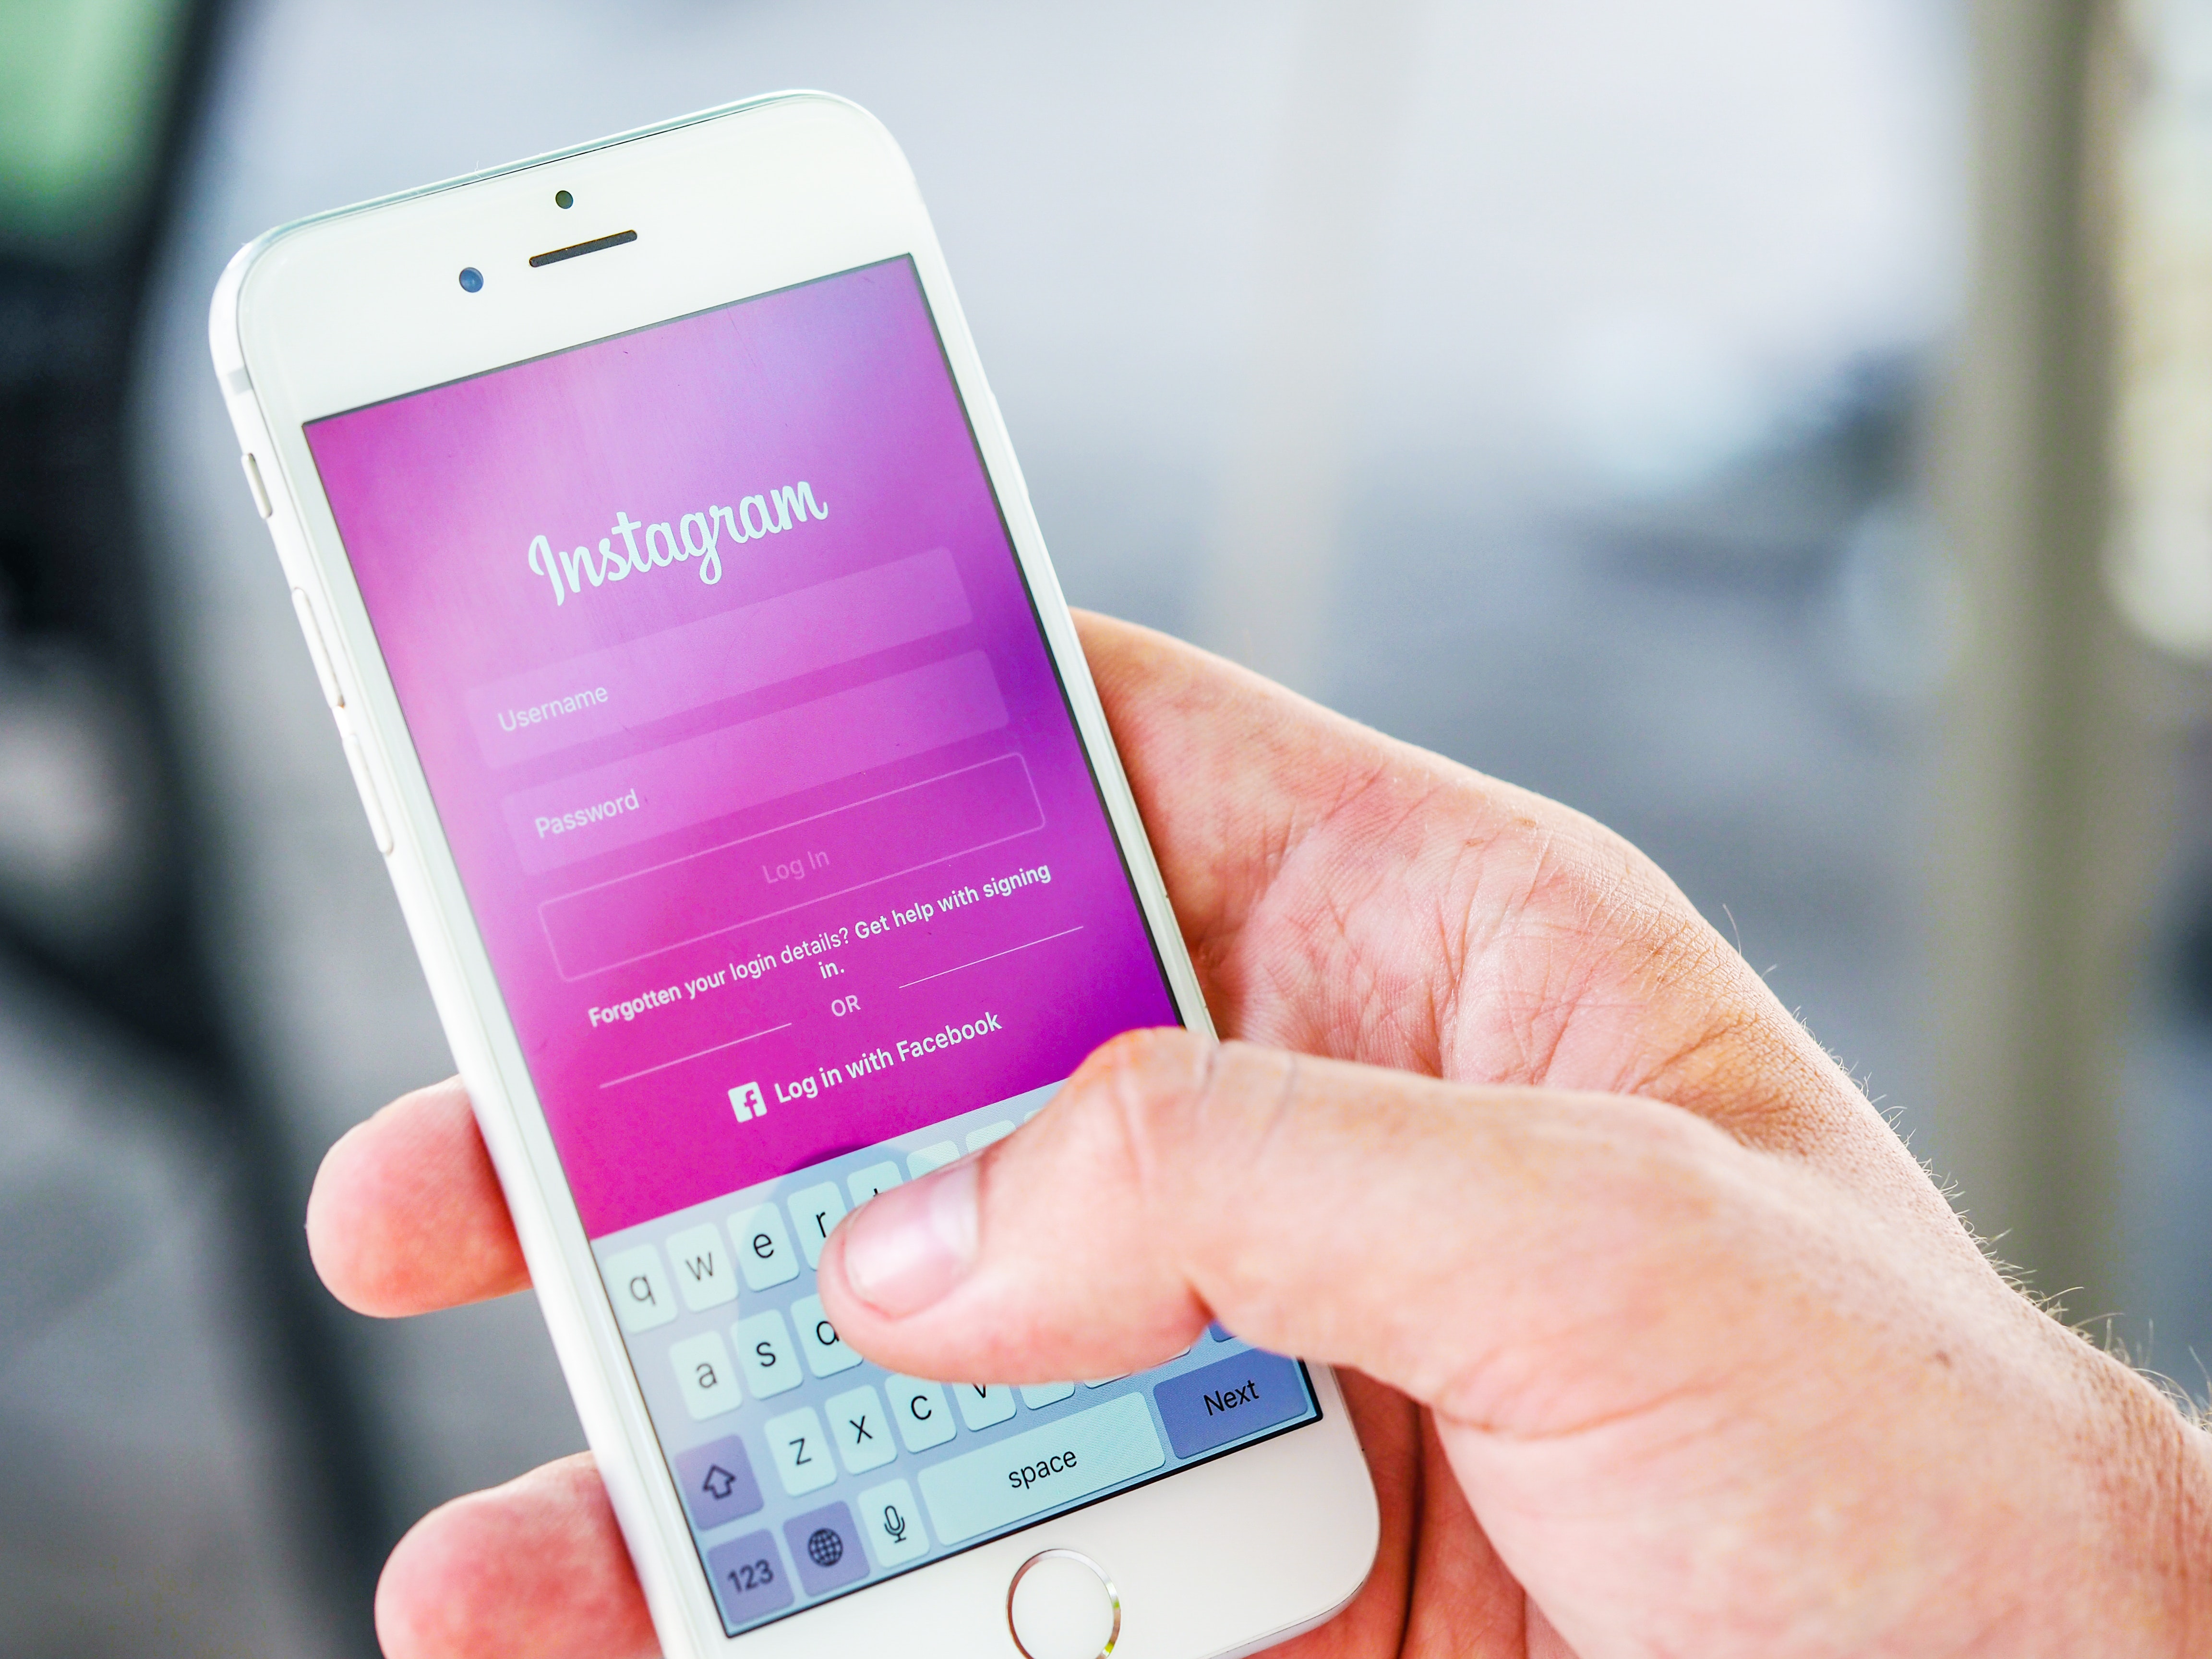 How to delete an old Instagram account